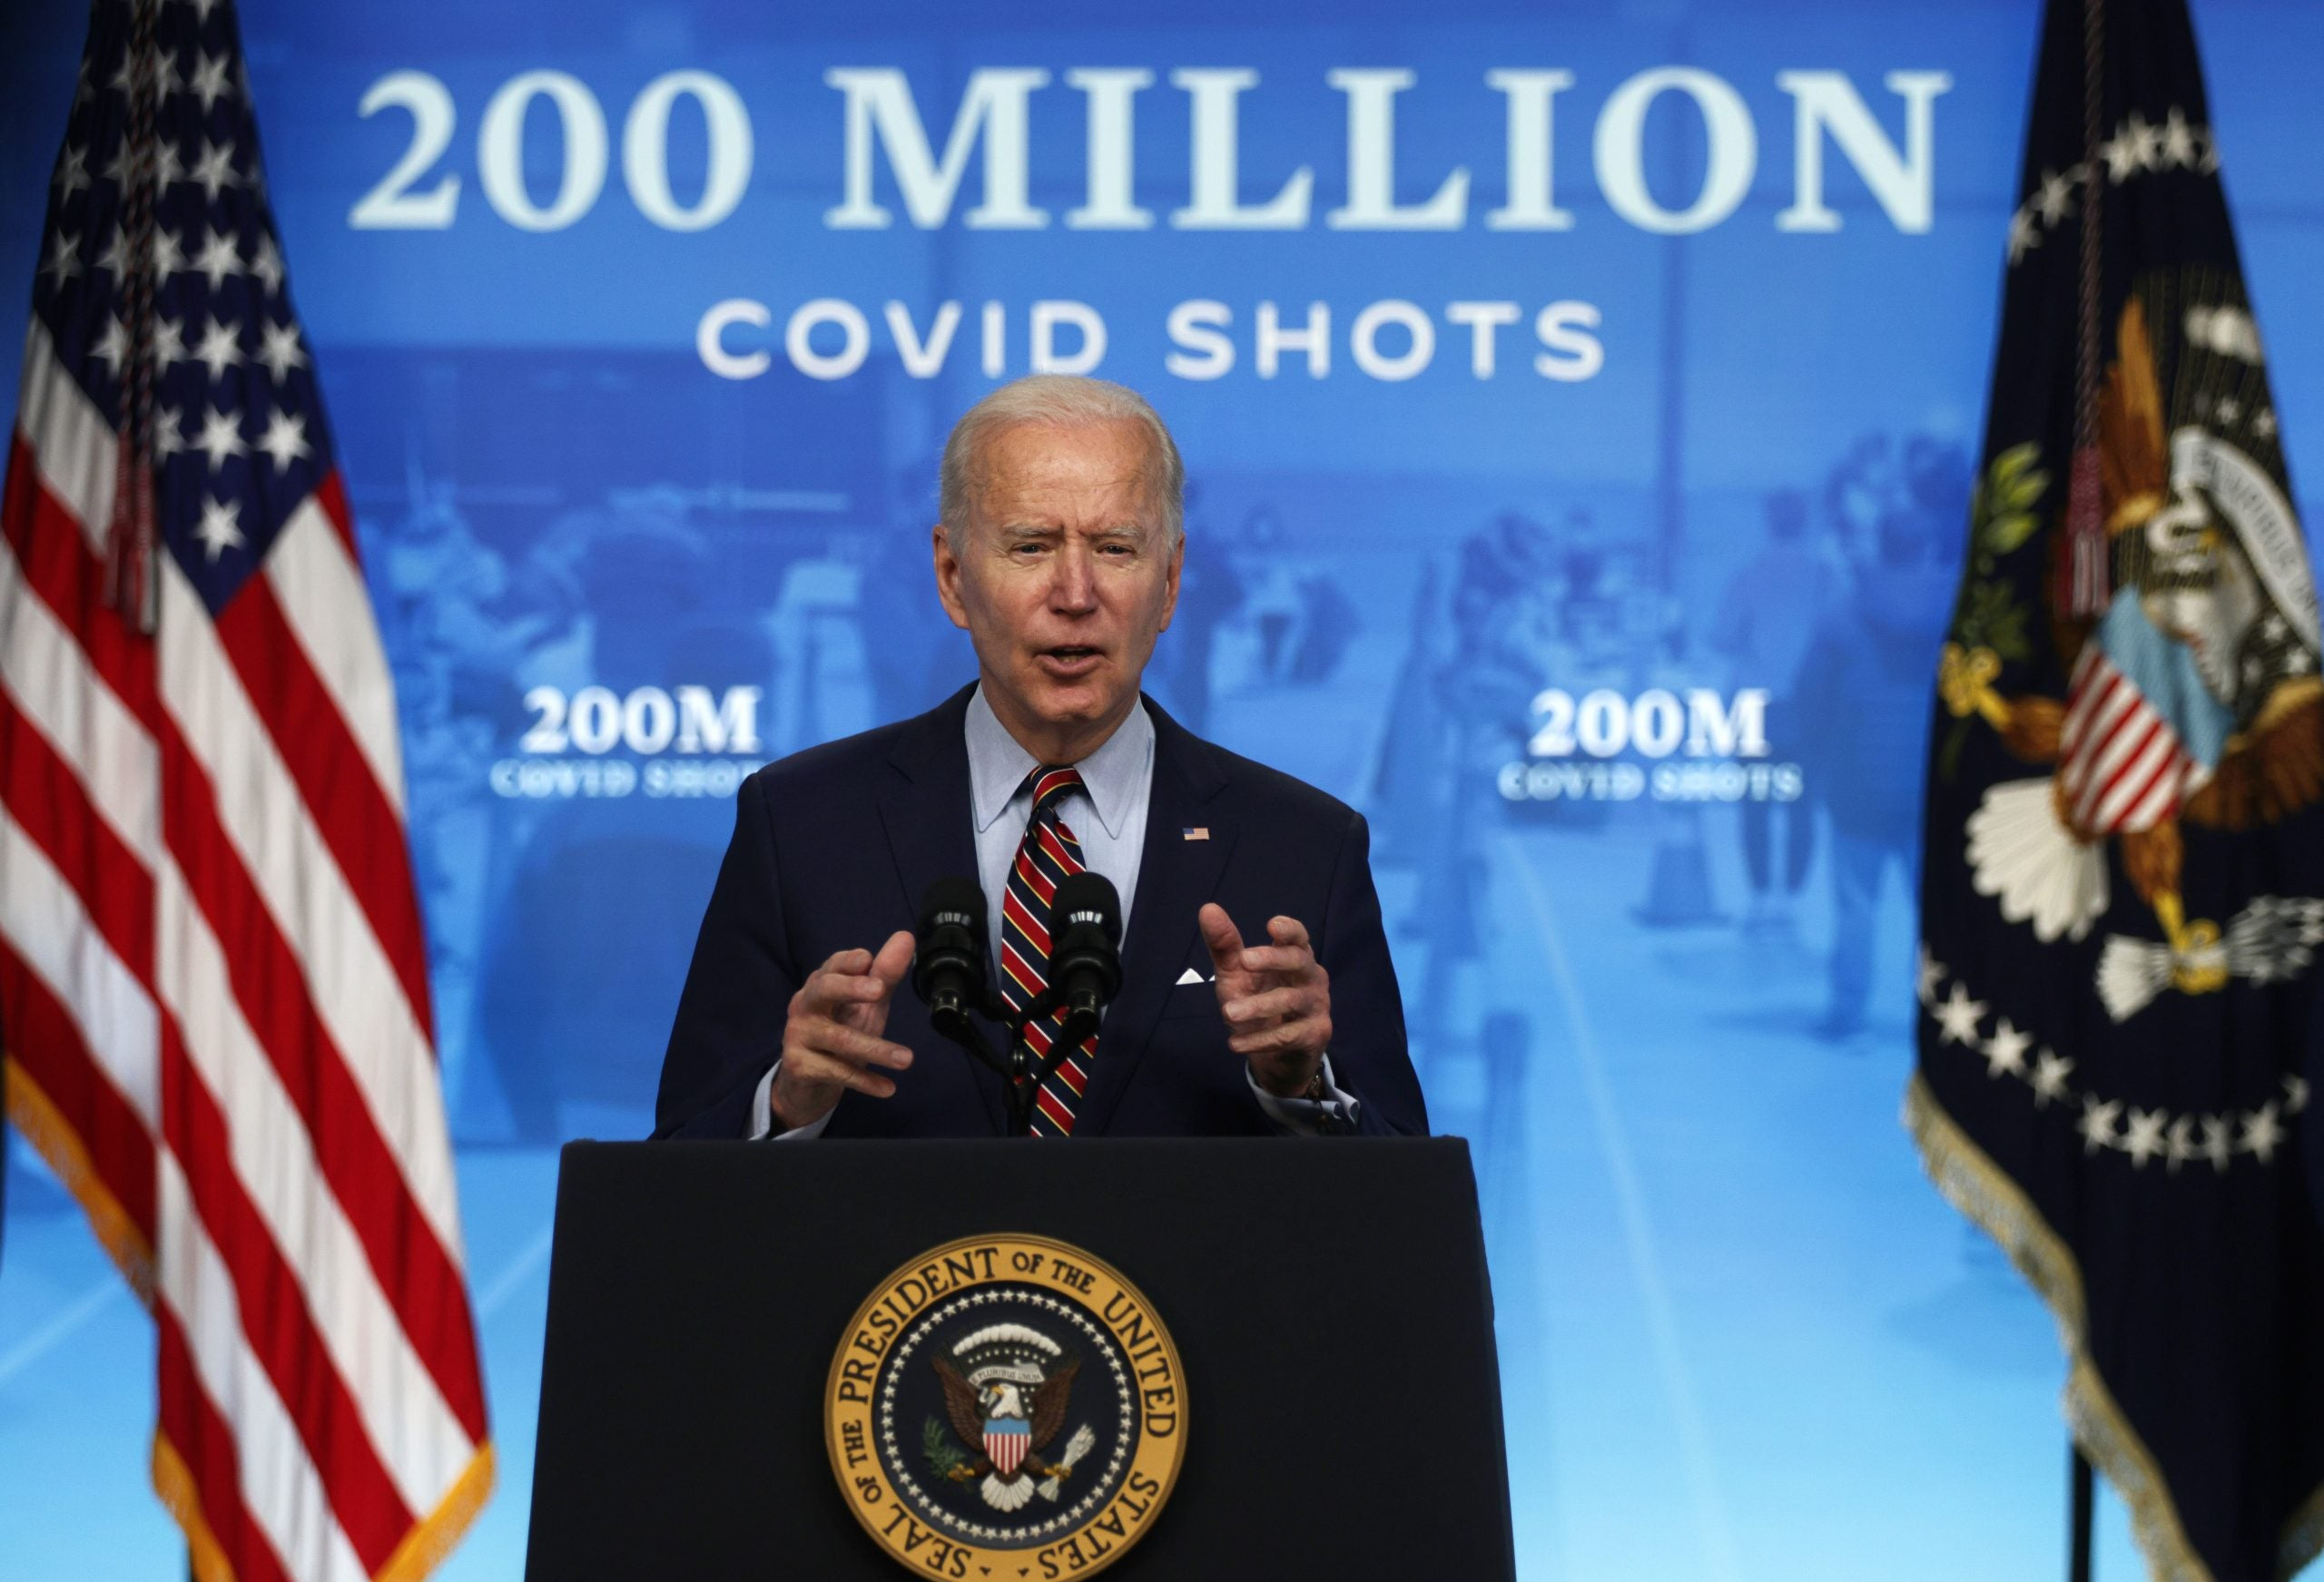 Joe Biden's first 100 days have been action-packed, but on foreign policy he is moving more slowly